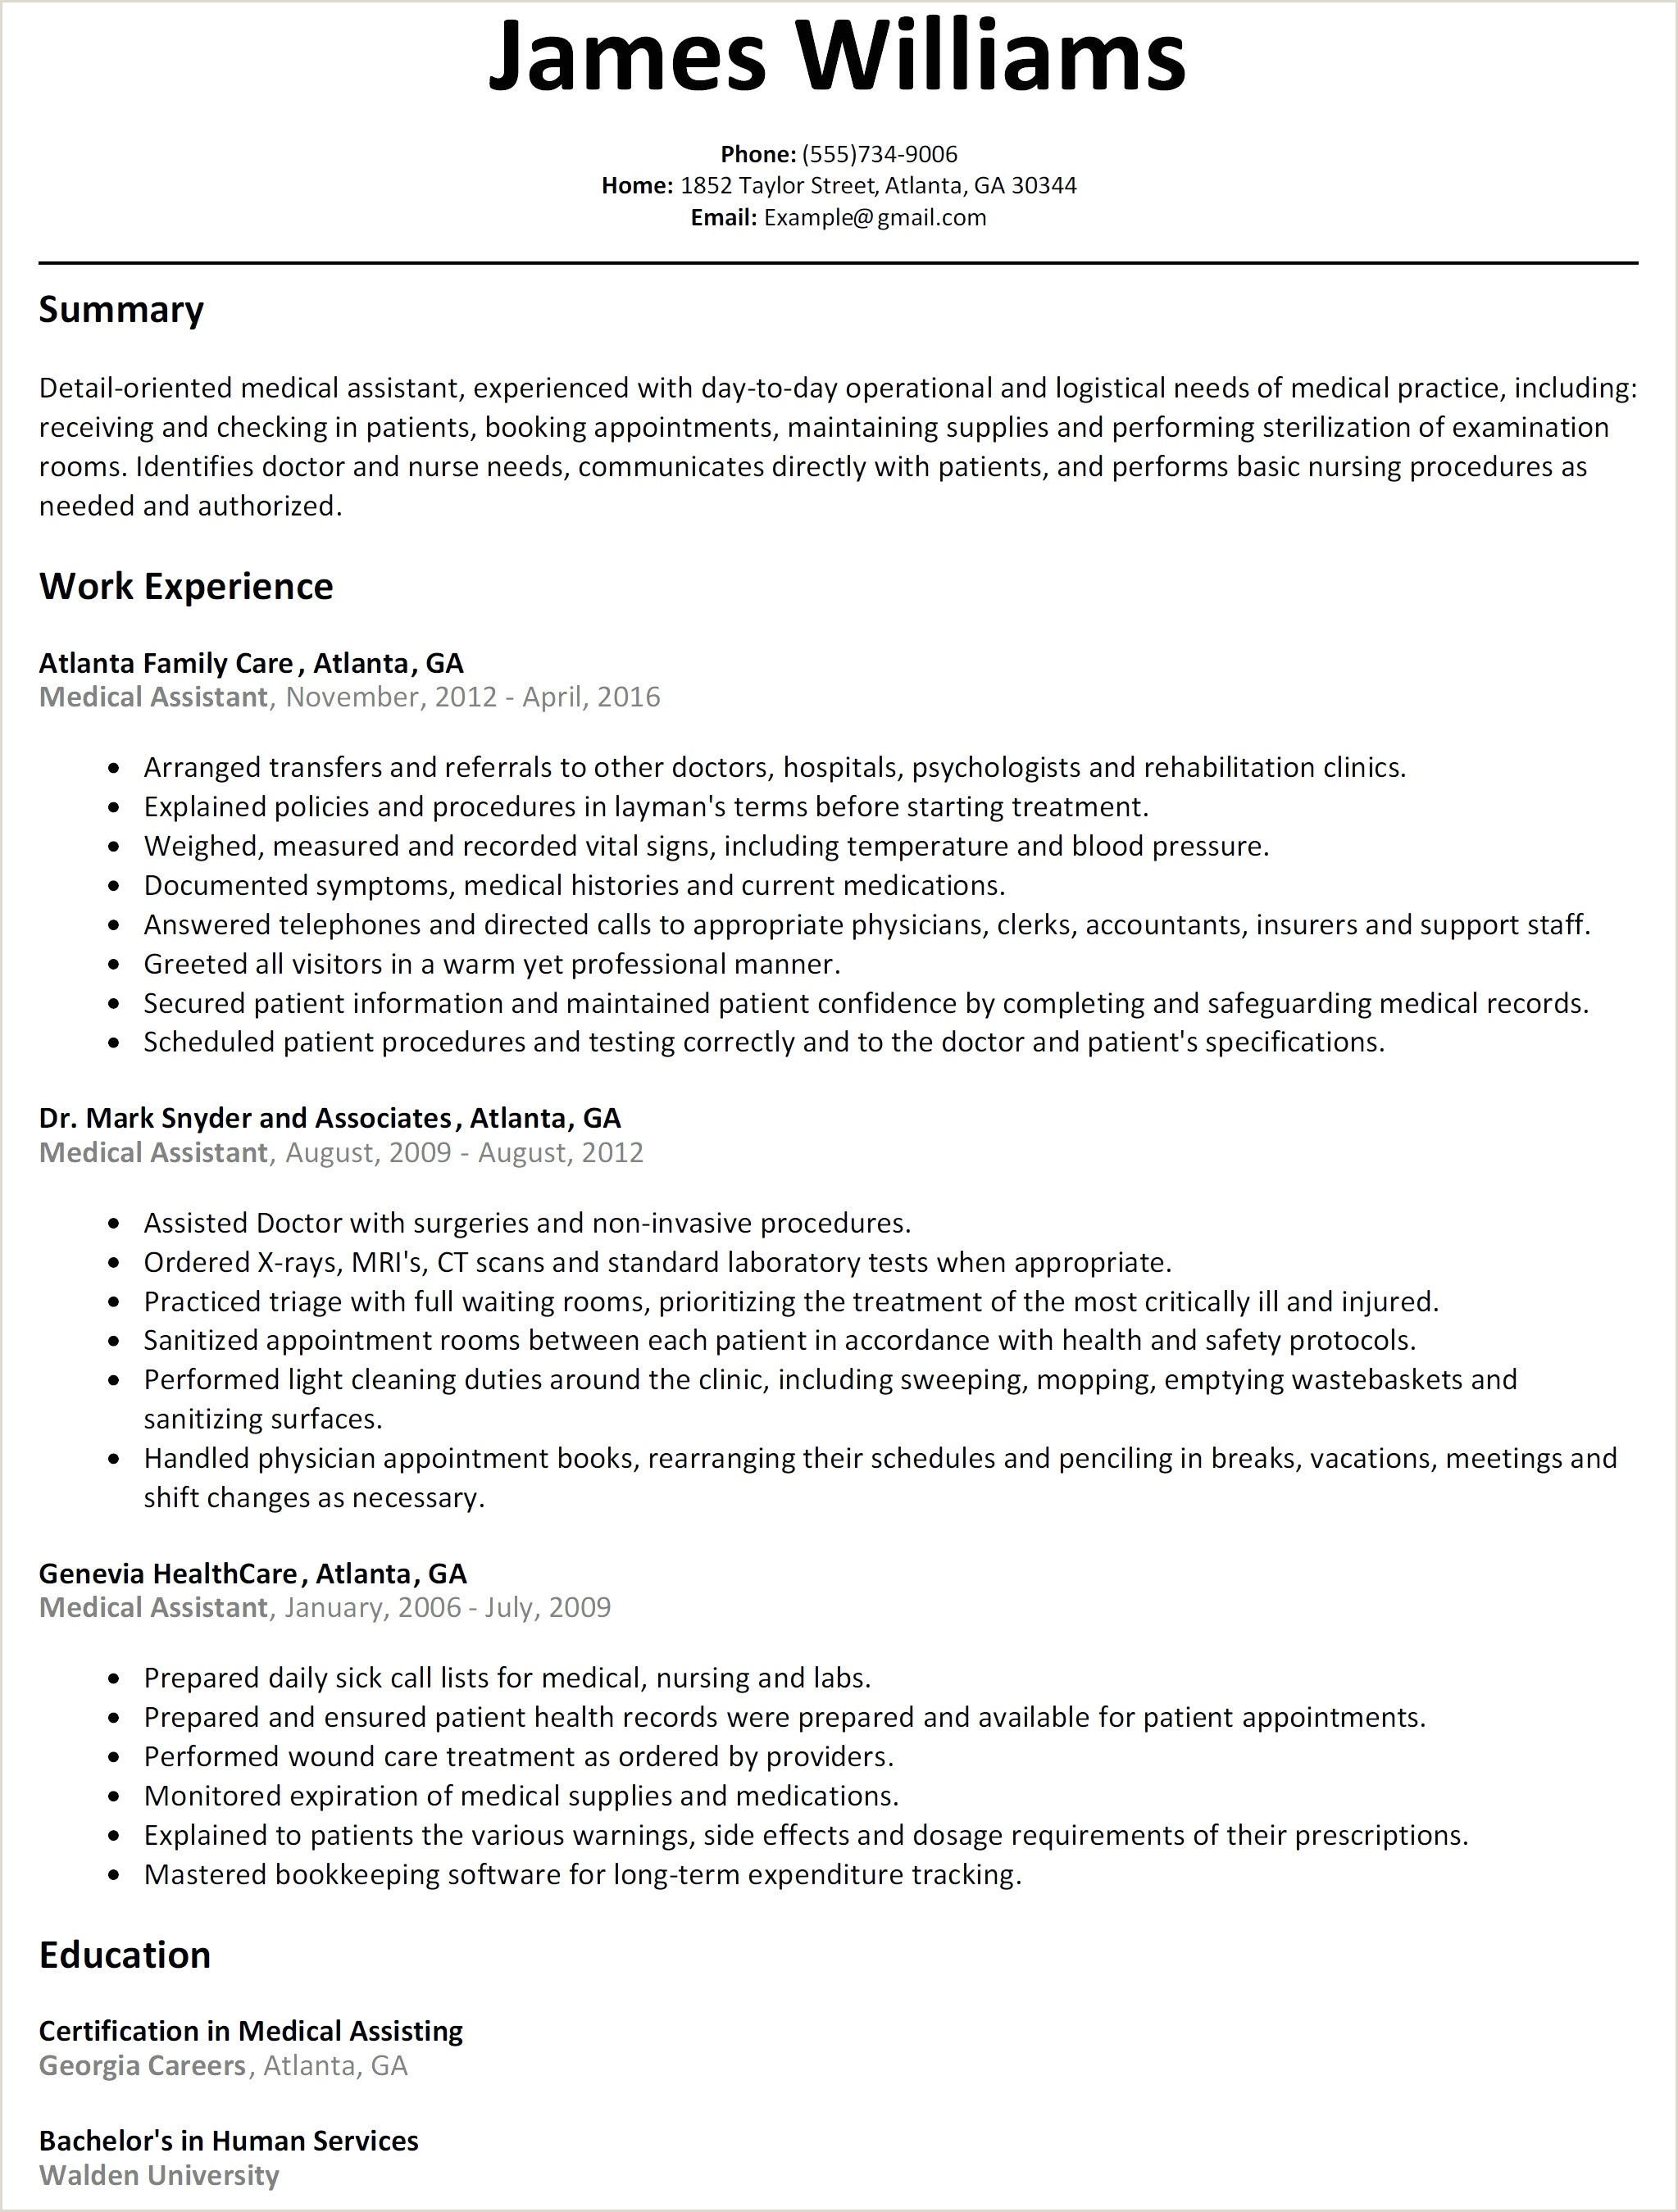 Child Care Resume Templates Good Resume Templates Free – Salumguilher